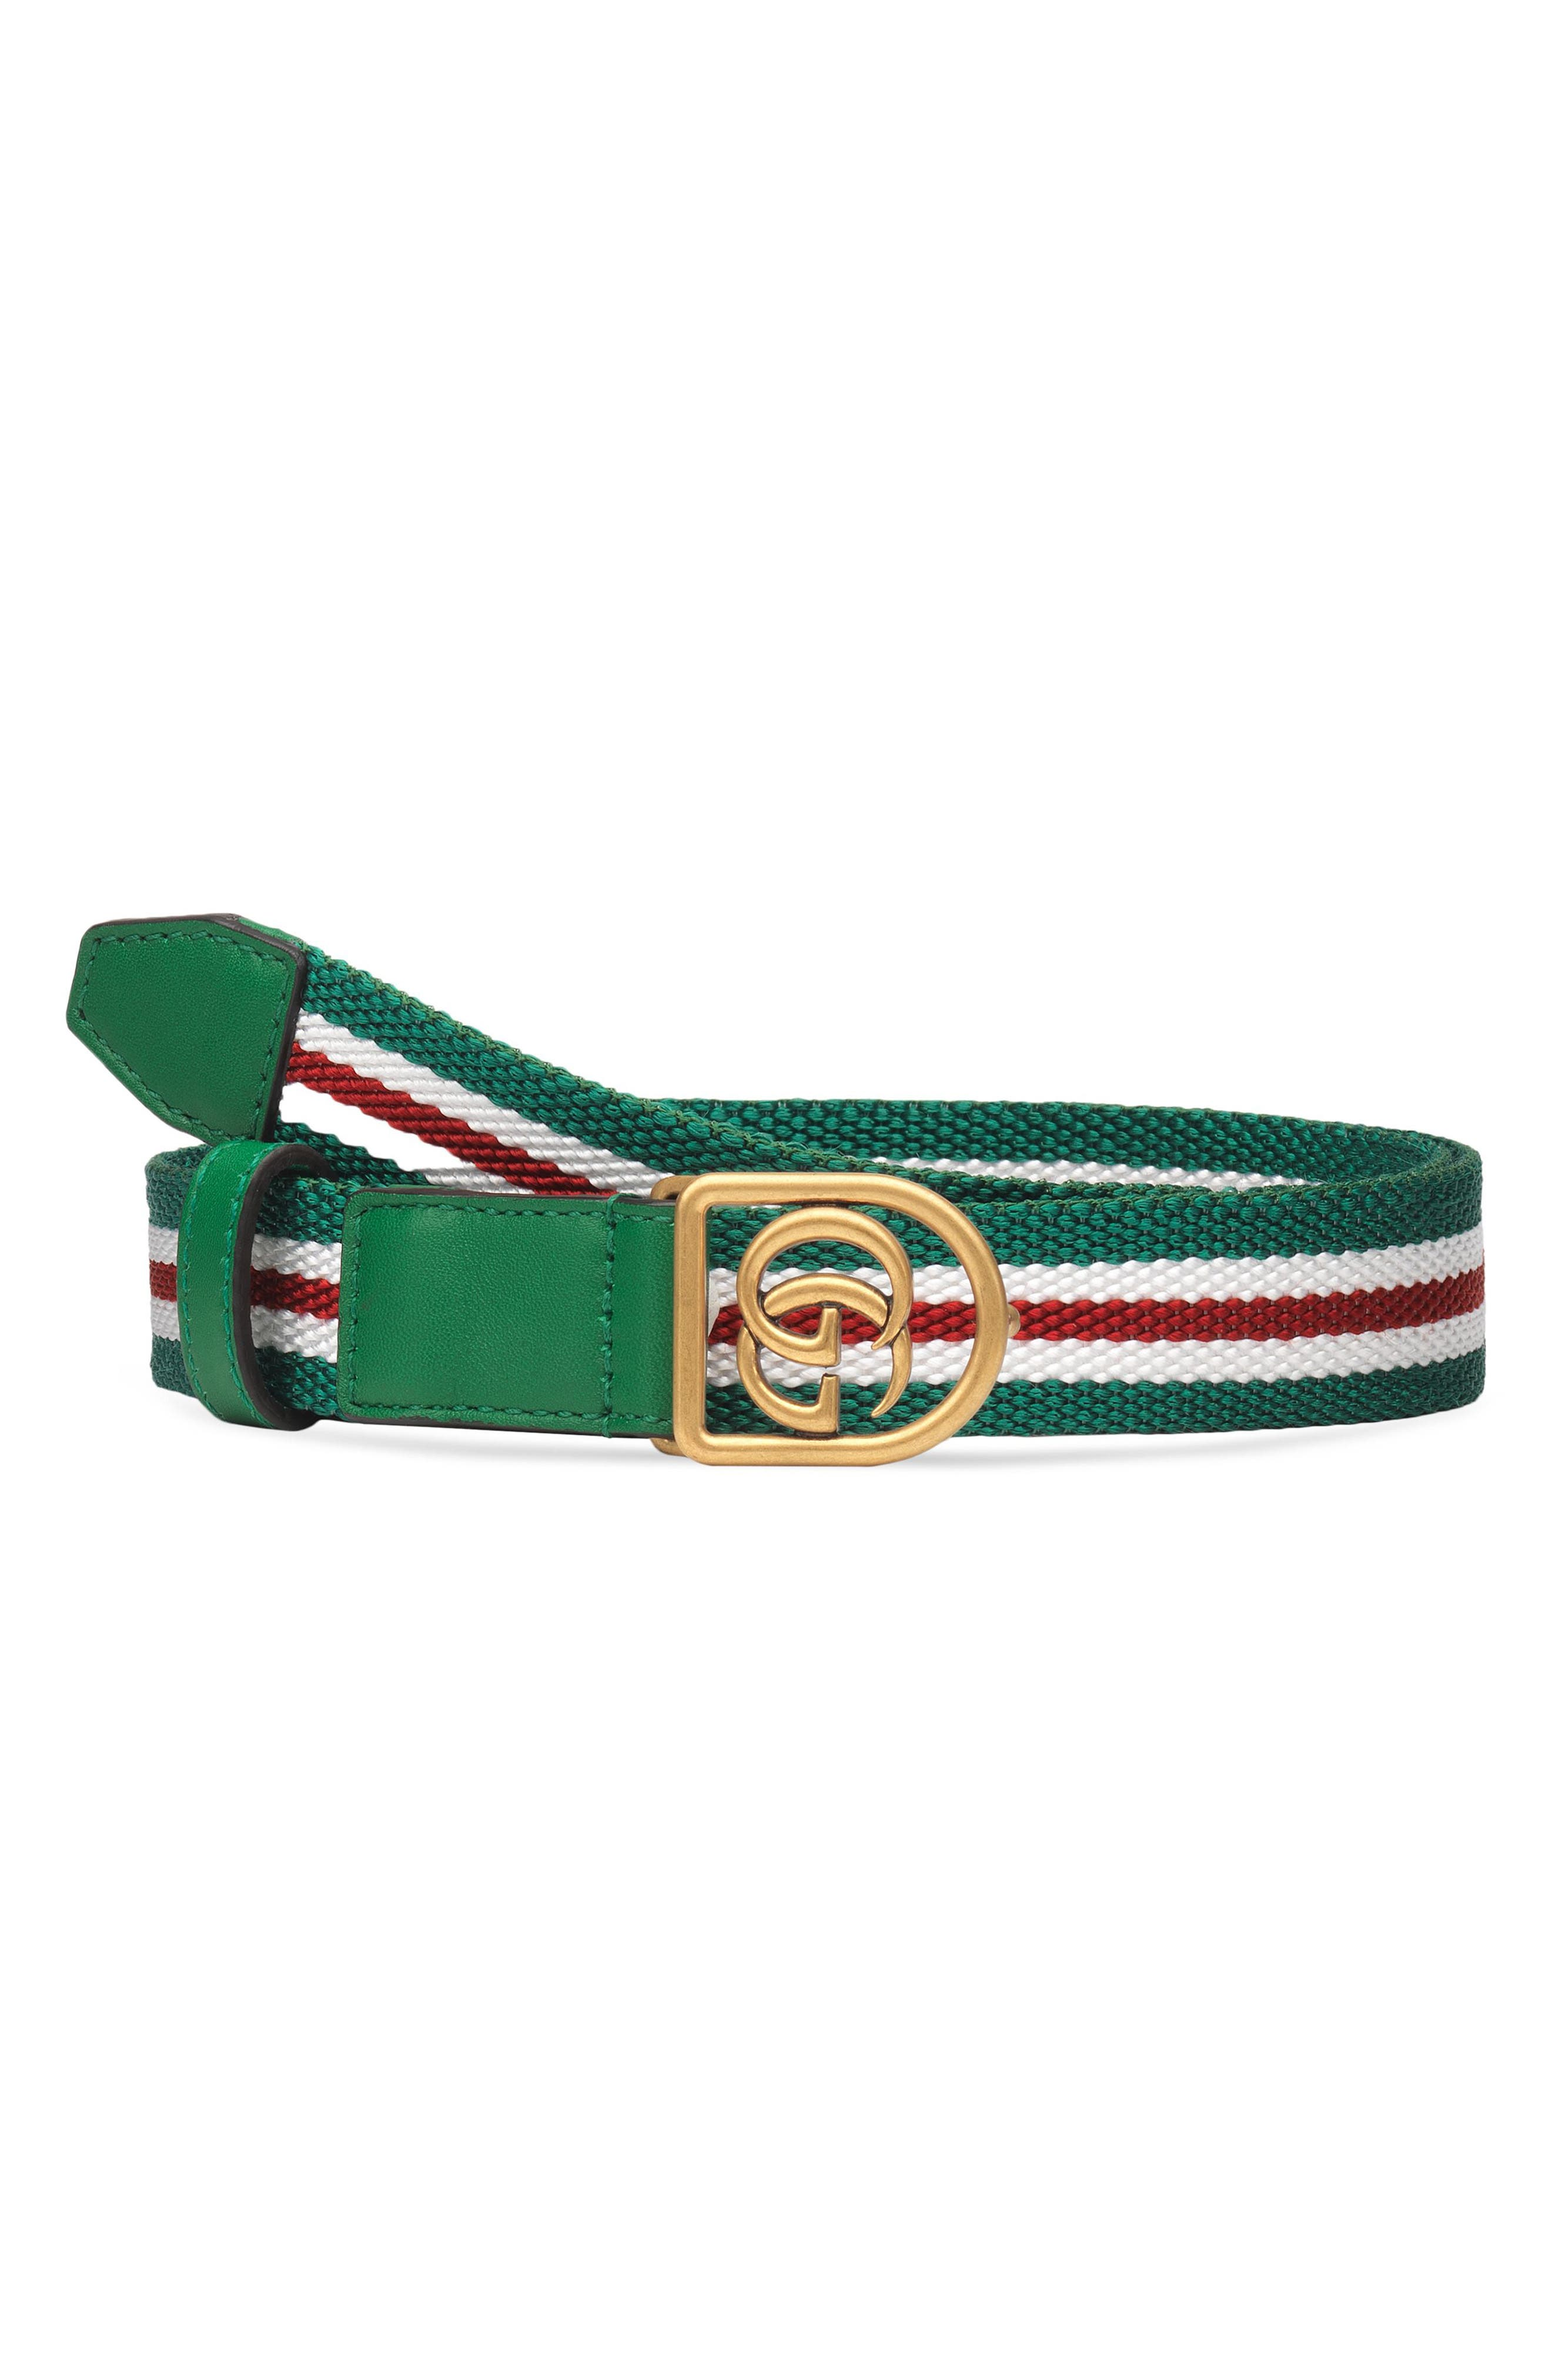 GG Logo Web Stripe Belt,                             Main thumbnail 1, color,                             Rose Garden